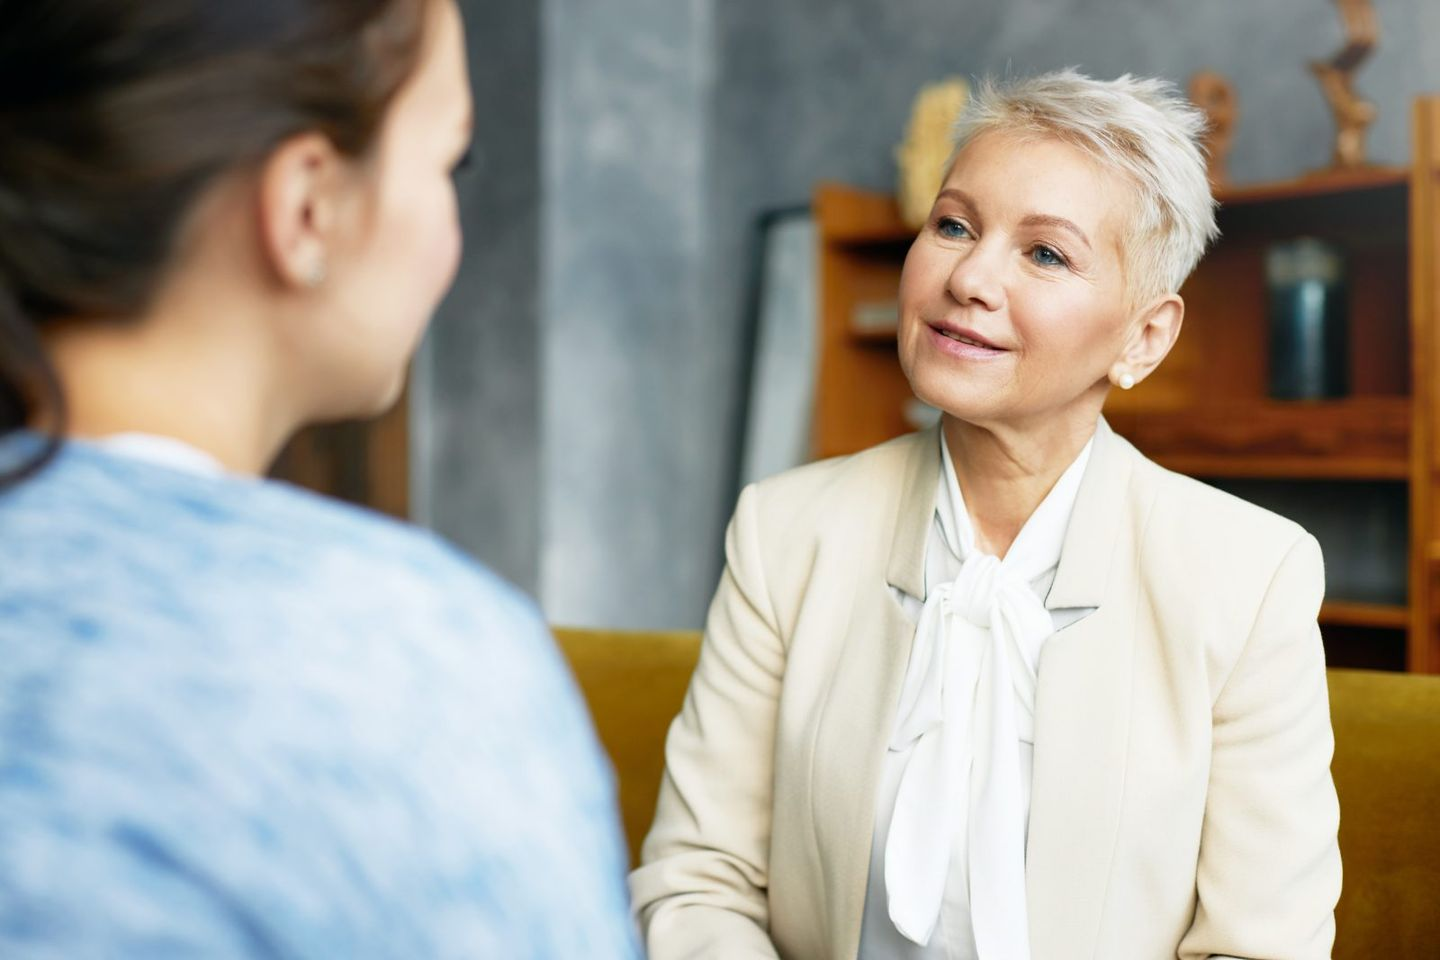 Psychology consulting and coaching concept stylish middle aged female psychologist having conversation with brunette woman client discussing problems and progress sitting in her cozy office